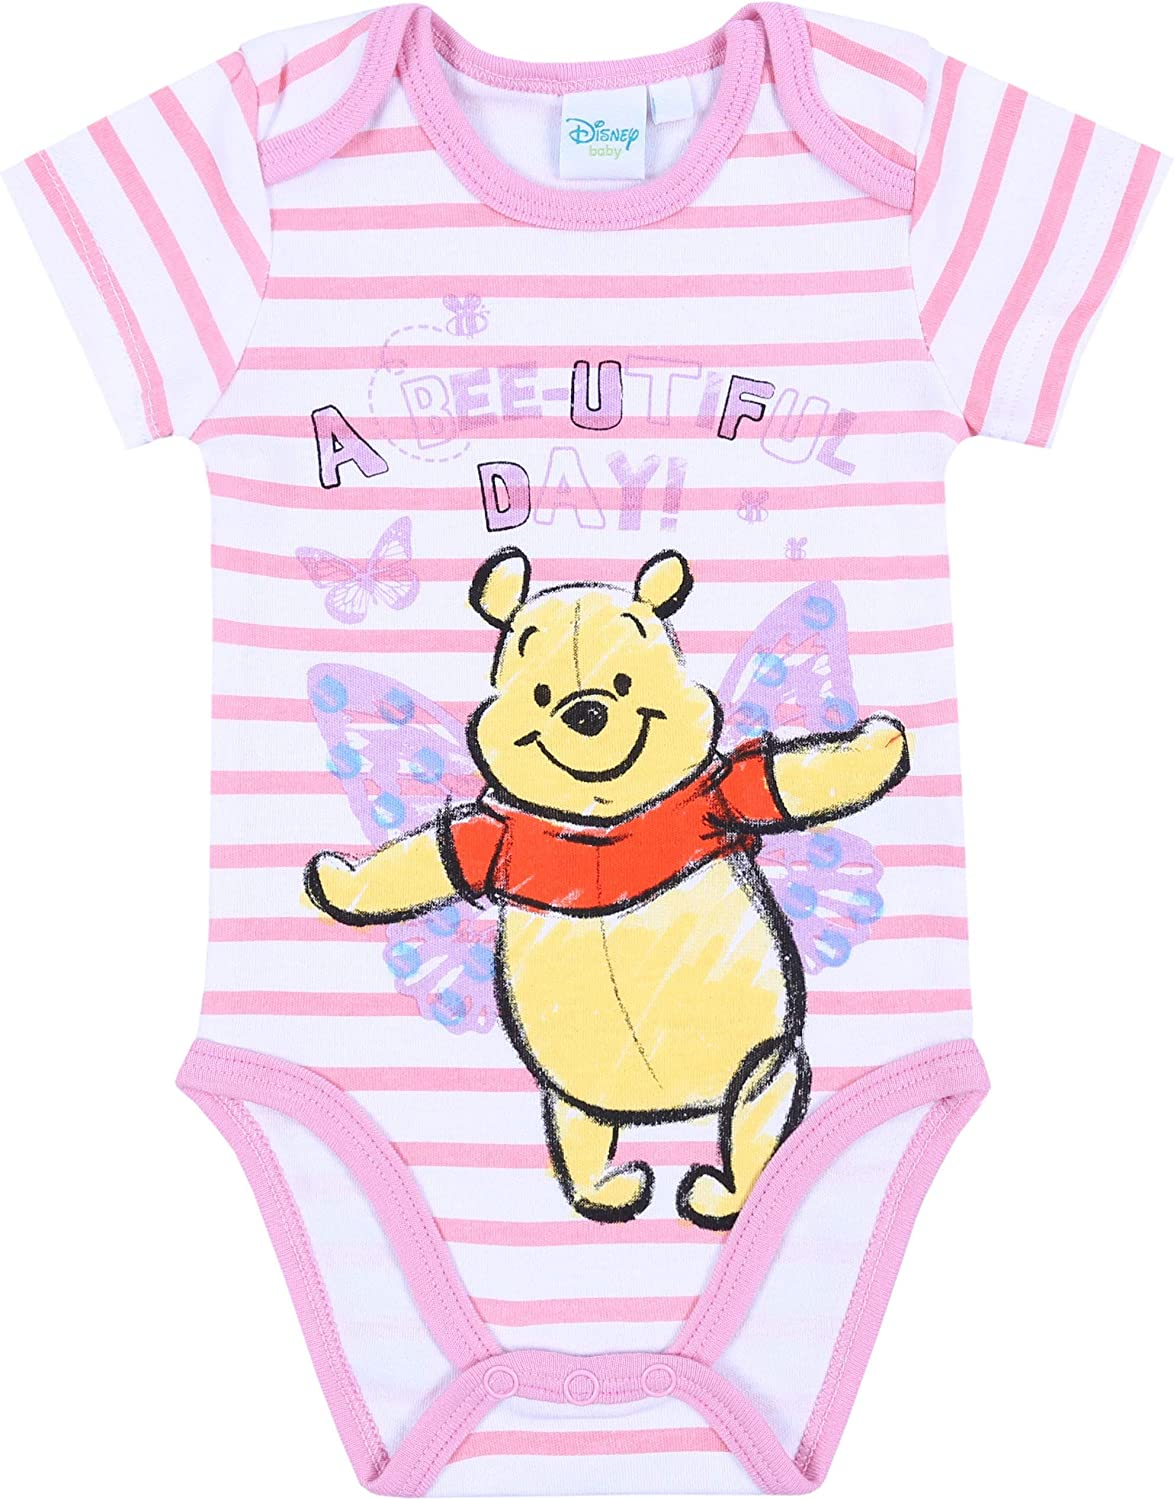 1 x Pink//White Striped Bodysuit for Baby Girls Winnie The Pooh Disney